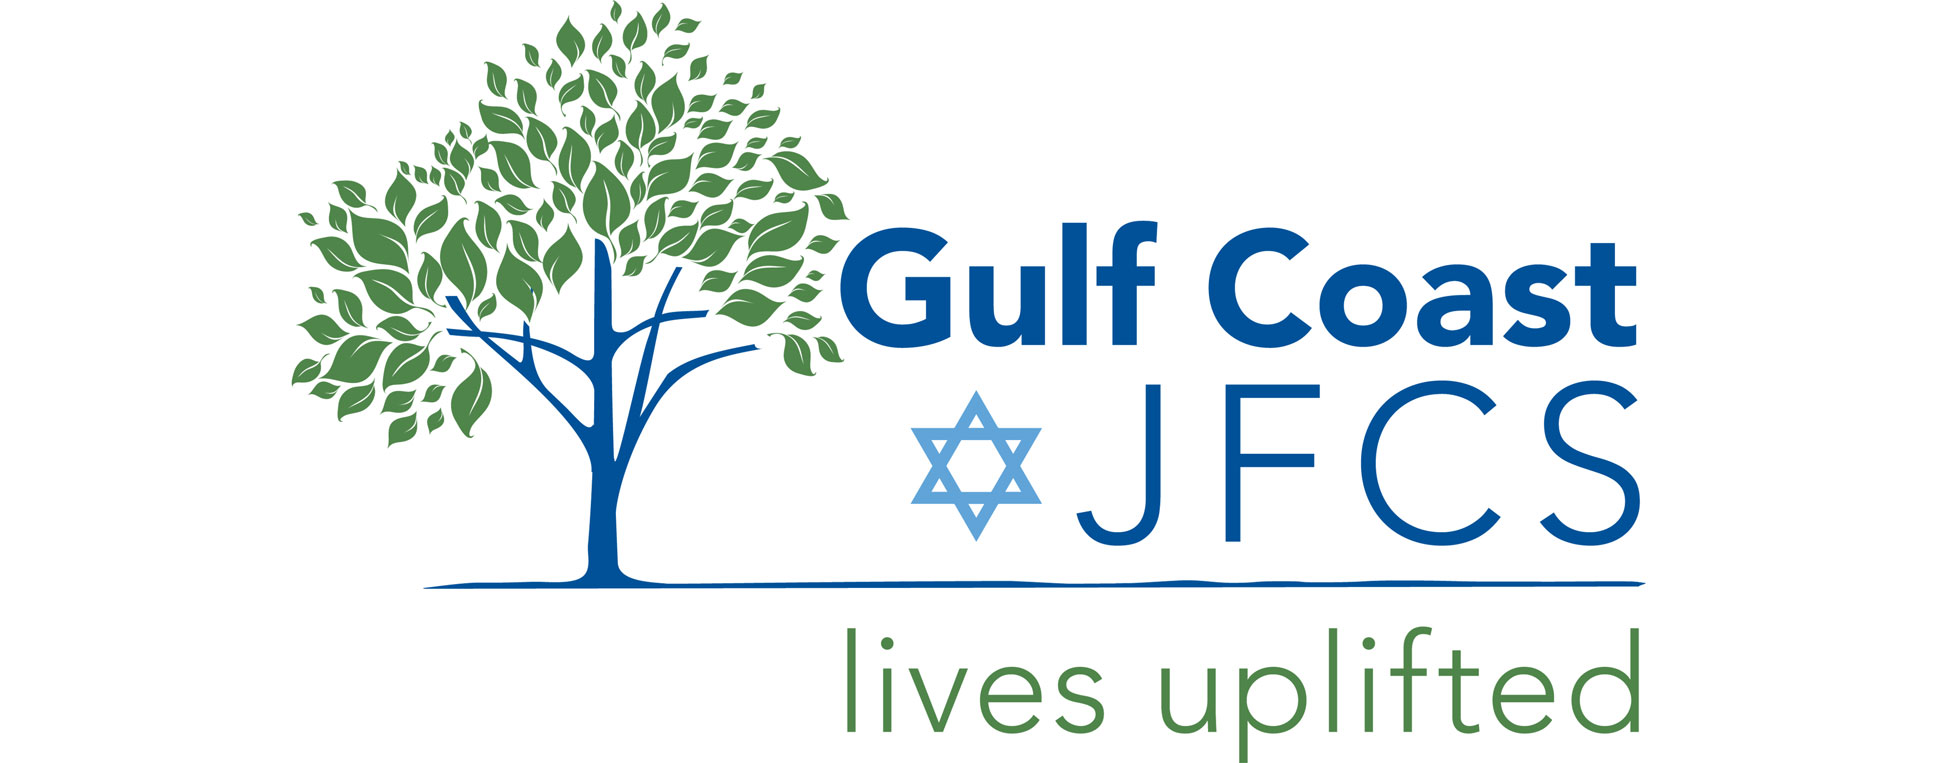 jewish singles in gulf shores The matchmaker adds a human element to the digital element, said rabbi  chaim lipskar, who went online with jmiami two months ago and.